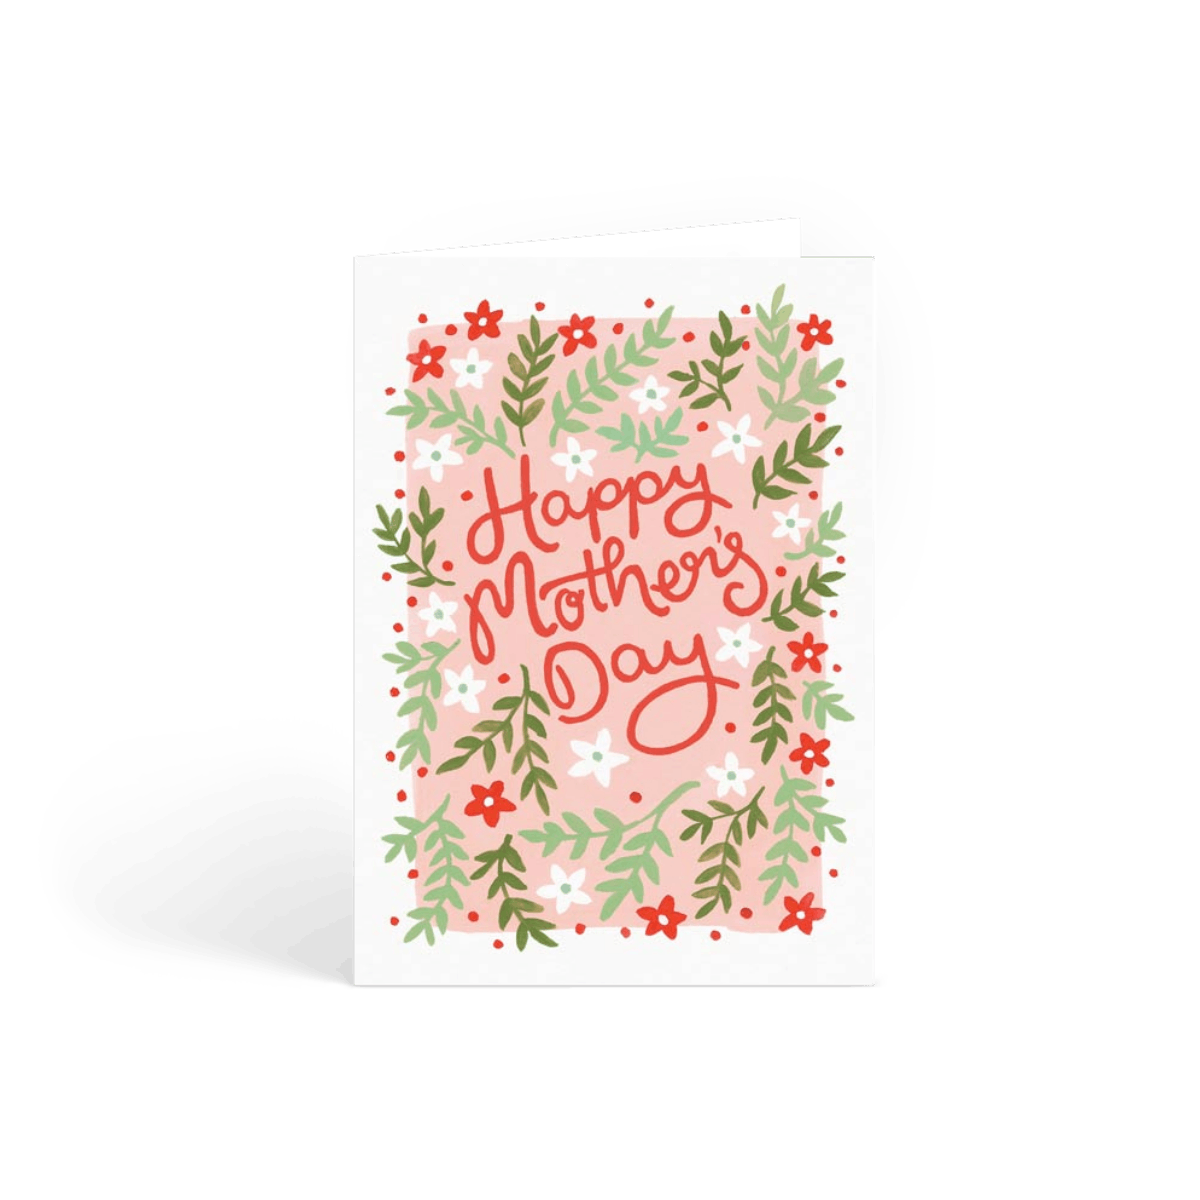 Https%3a%2f%2fwww.papier.com%2fproduct image%2f12731%2f2%2fmother s day flowers 3199 front 1580762976.png?ixlib=rb 1.1